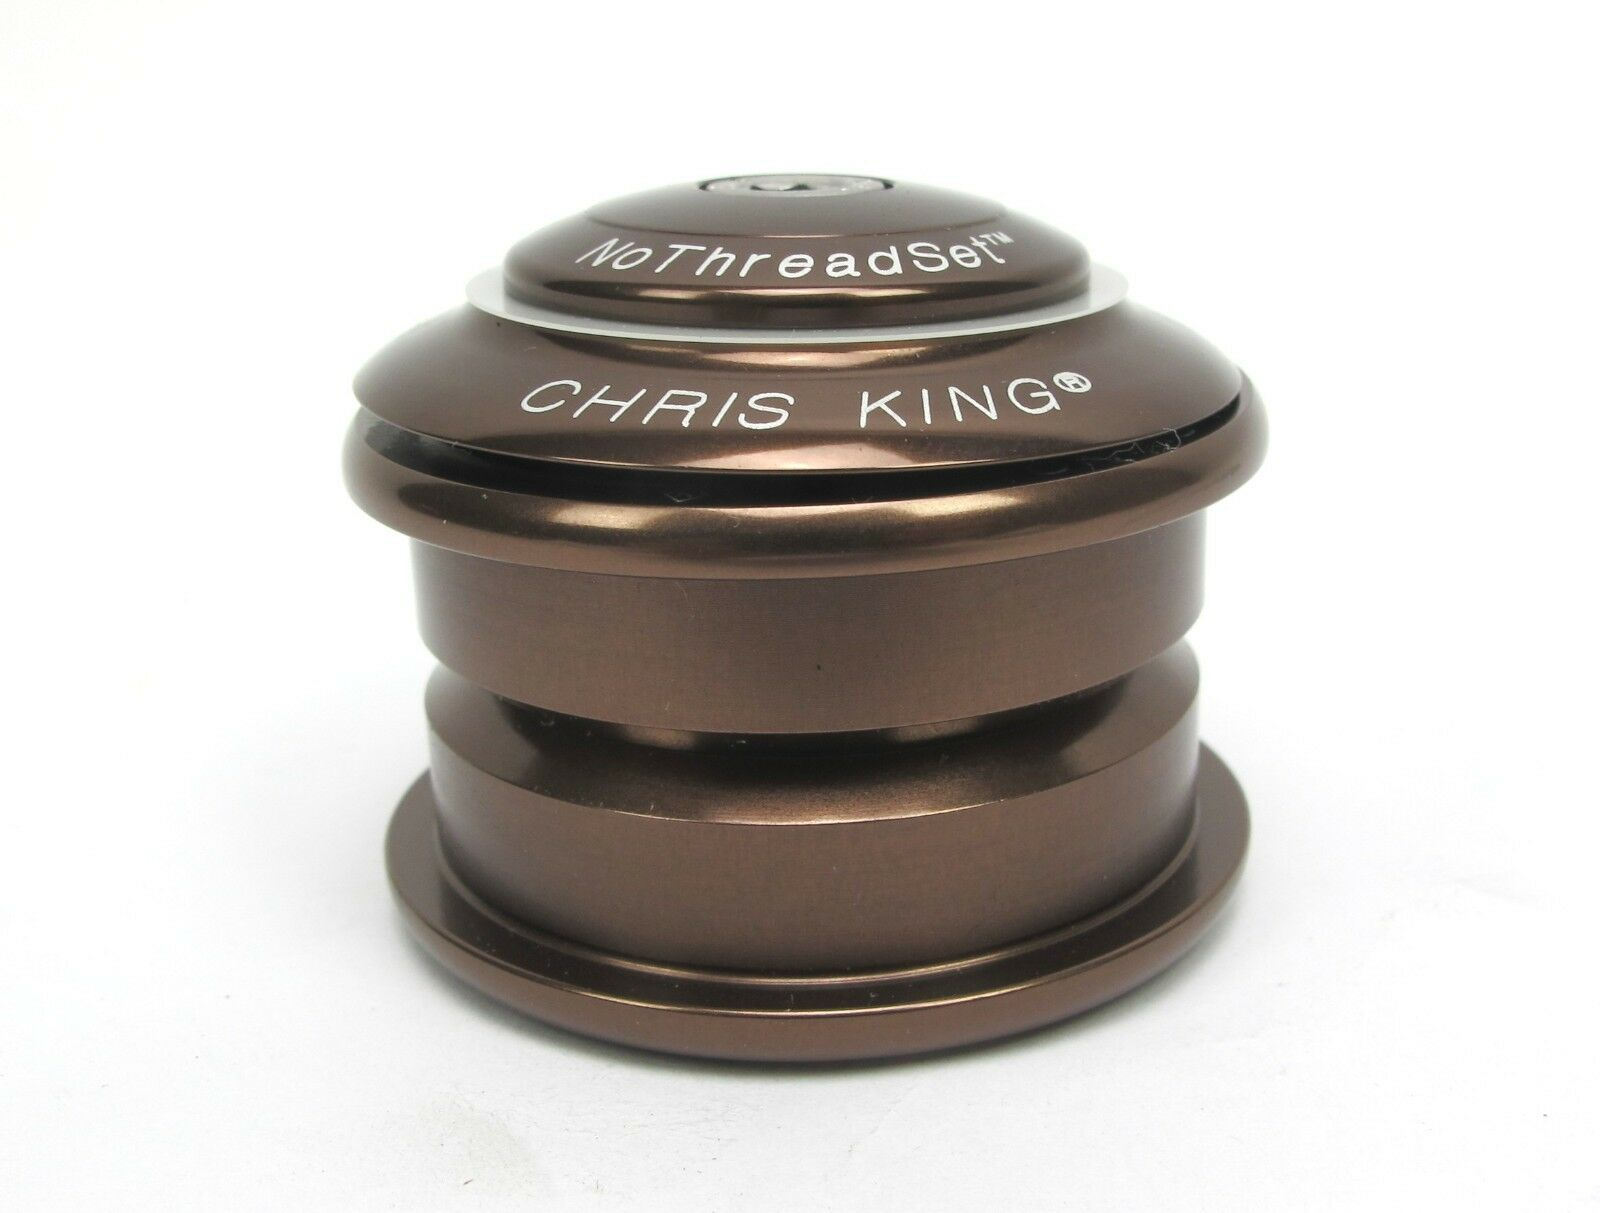 New Chris King i1 Inset 1 Headset - Brown - ZS44 ZS44 1 1 8  - 10 Year Warranty